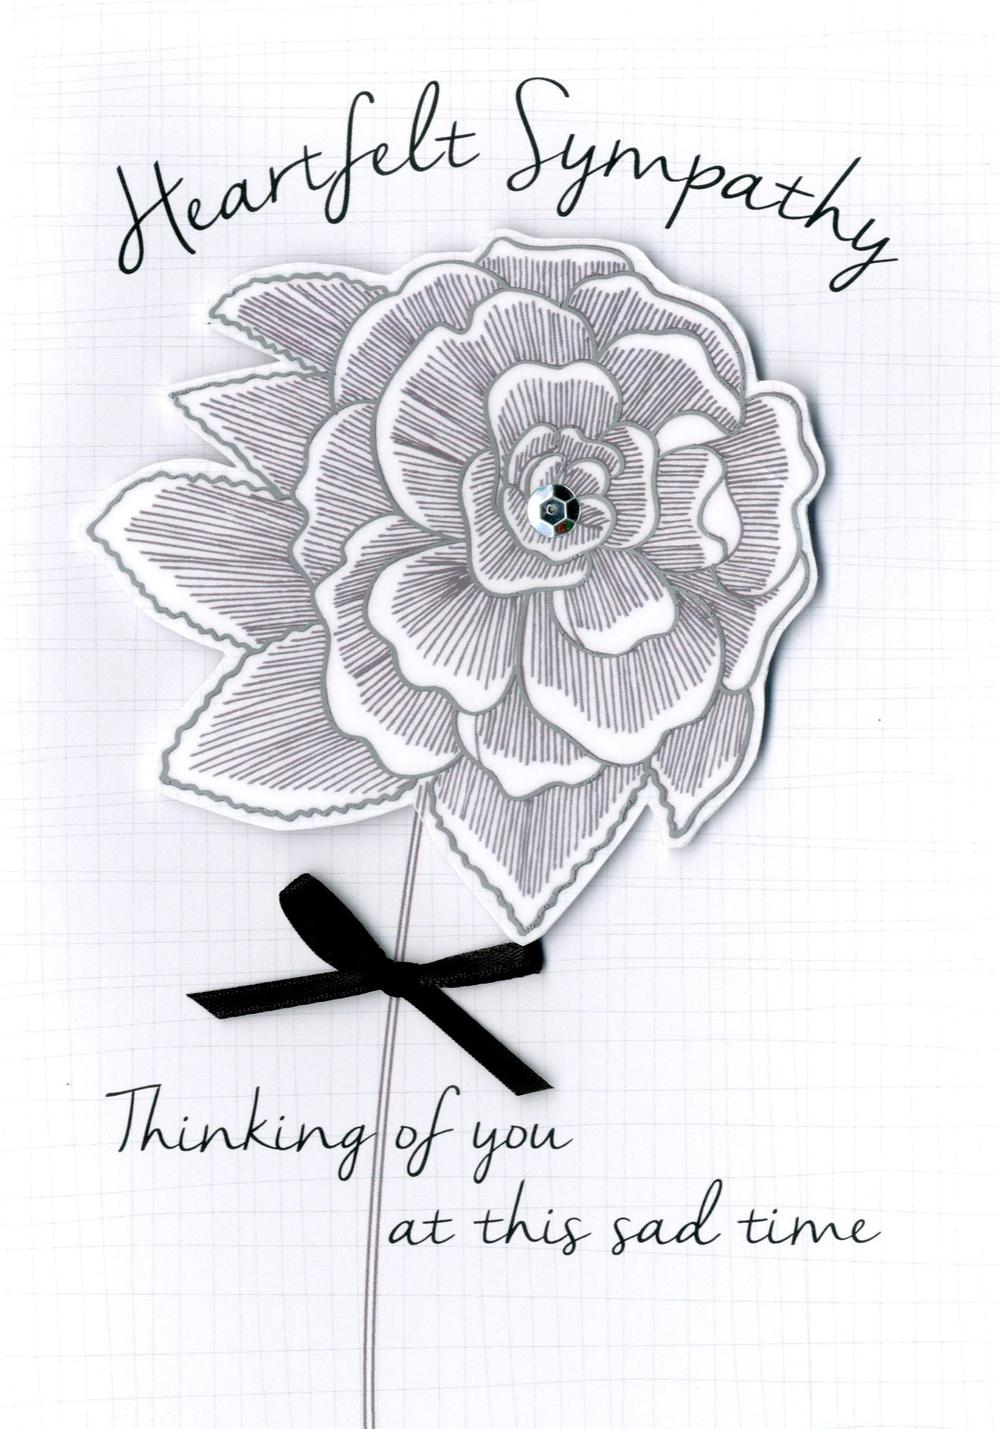 Heartfelt Sympathy Greeting Card